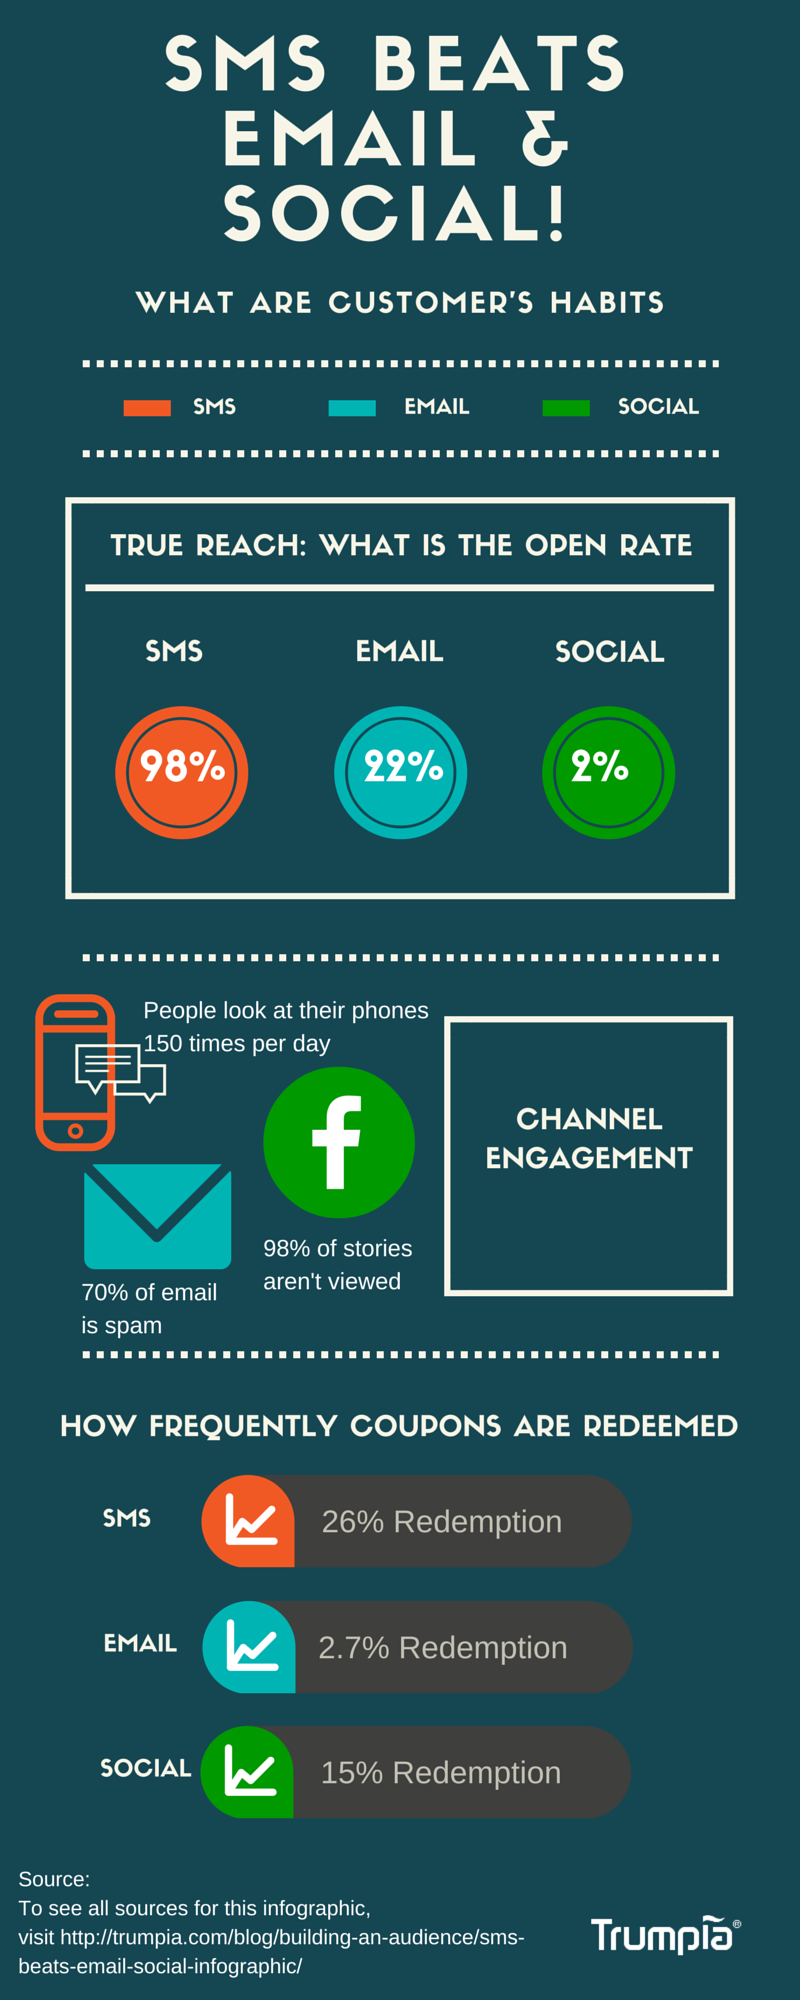 Infographic credit: http://trumpia.com/blog/sms-beats-email-social-infographic/